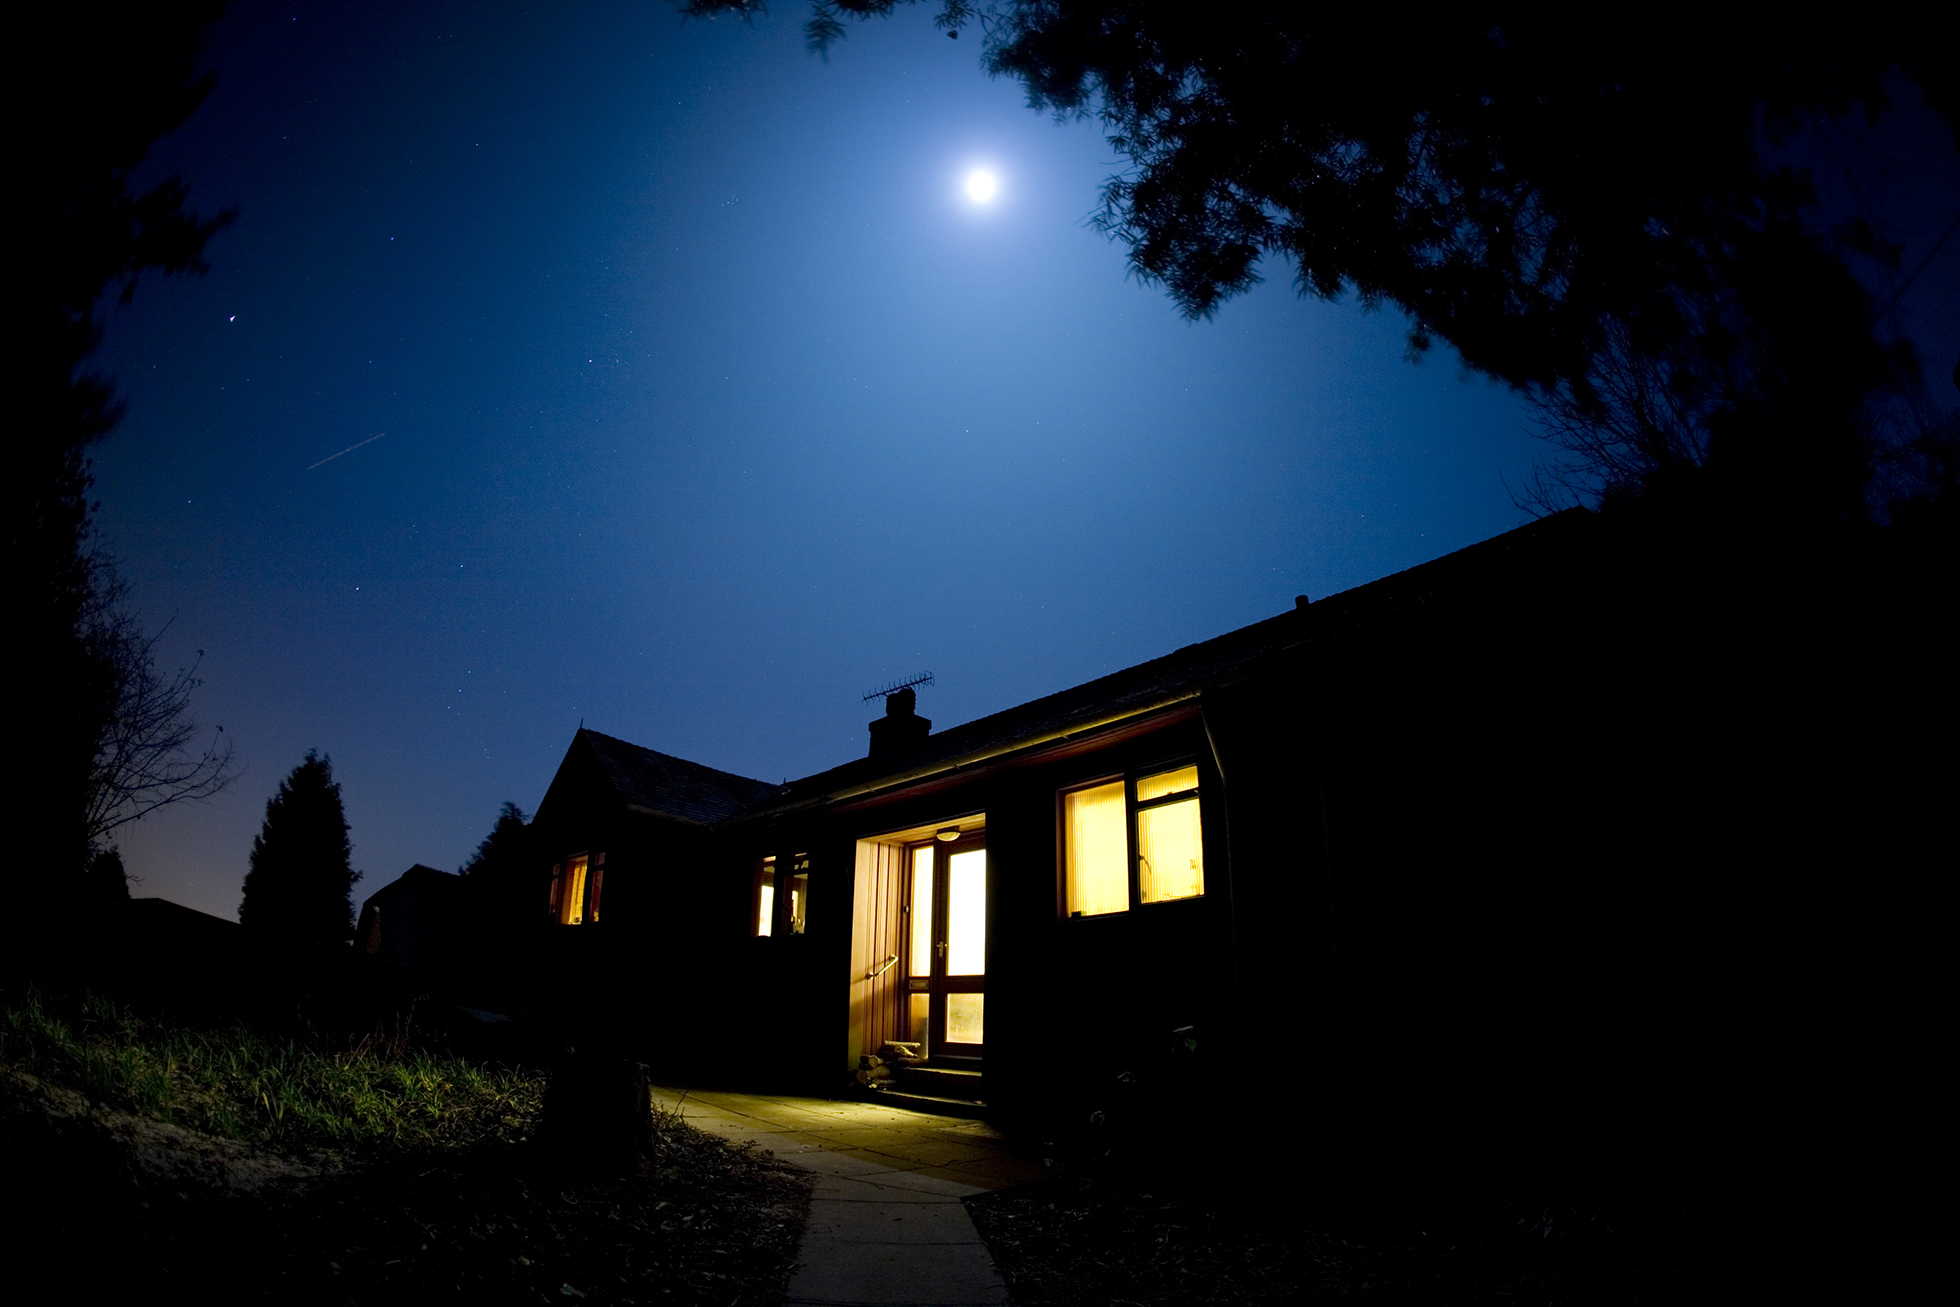 Silhouette of home at night | Stop watering lawns in morning